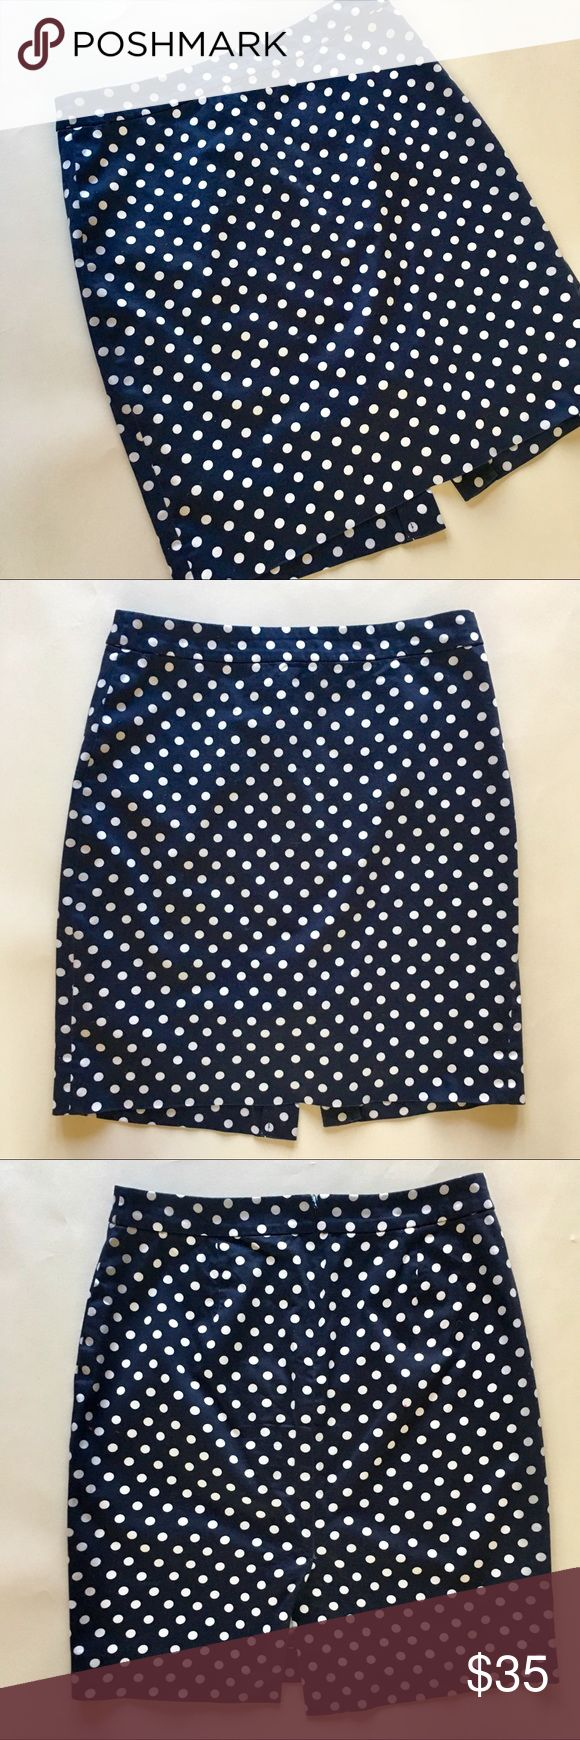 J. Crew Factory Navy Polka Dot Pencil Skirt Adorable navy polka dot pencil skirt from J. Crew Factory. The slight amount of stretch in the fabric makes this pencil skirt super flattering. Dress it up with a silk blouse or down with a chambray button-up.  I bough this skirt from J. Crew Factory in 2012 and have washed and worn it a few times since then. It's still in great shape with no stains/rips/pilling/etc.  98% cotton, 2% spandex Unlined Machine wash, line dry Back zip Sits at waist…